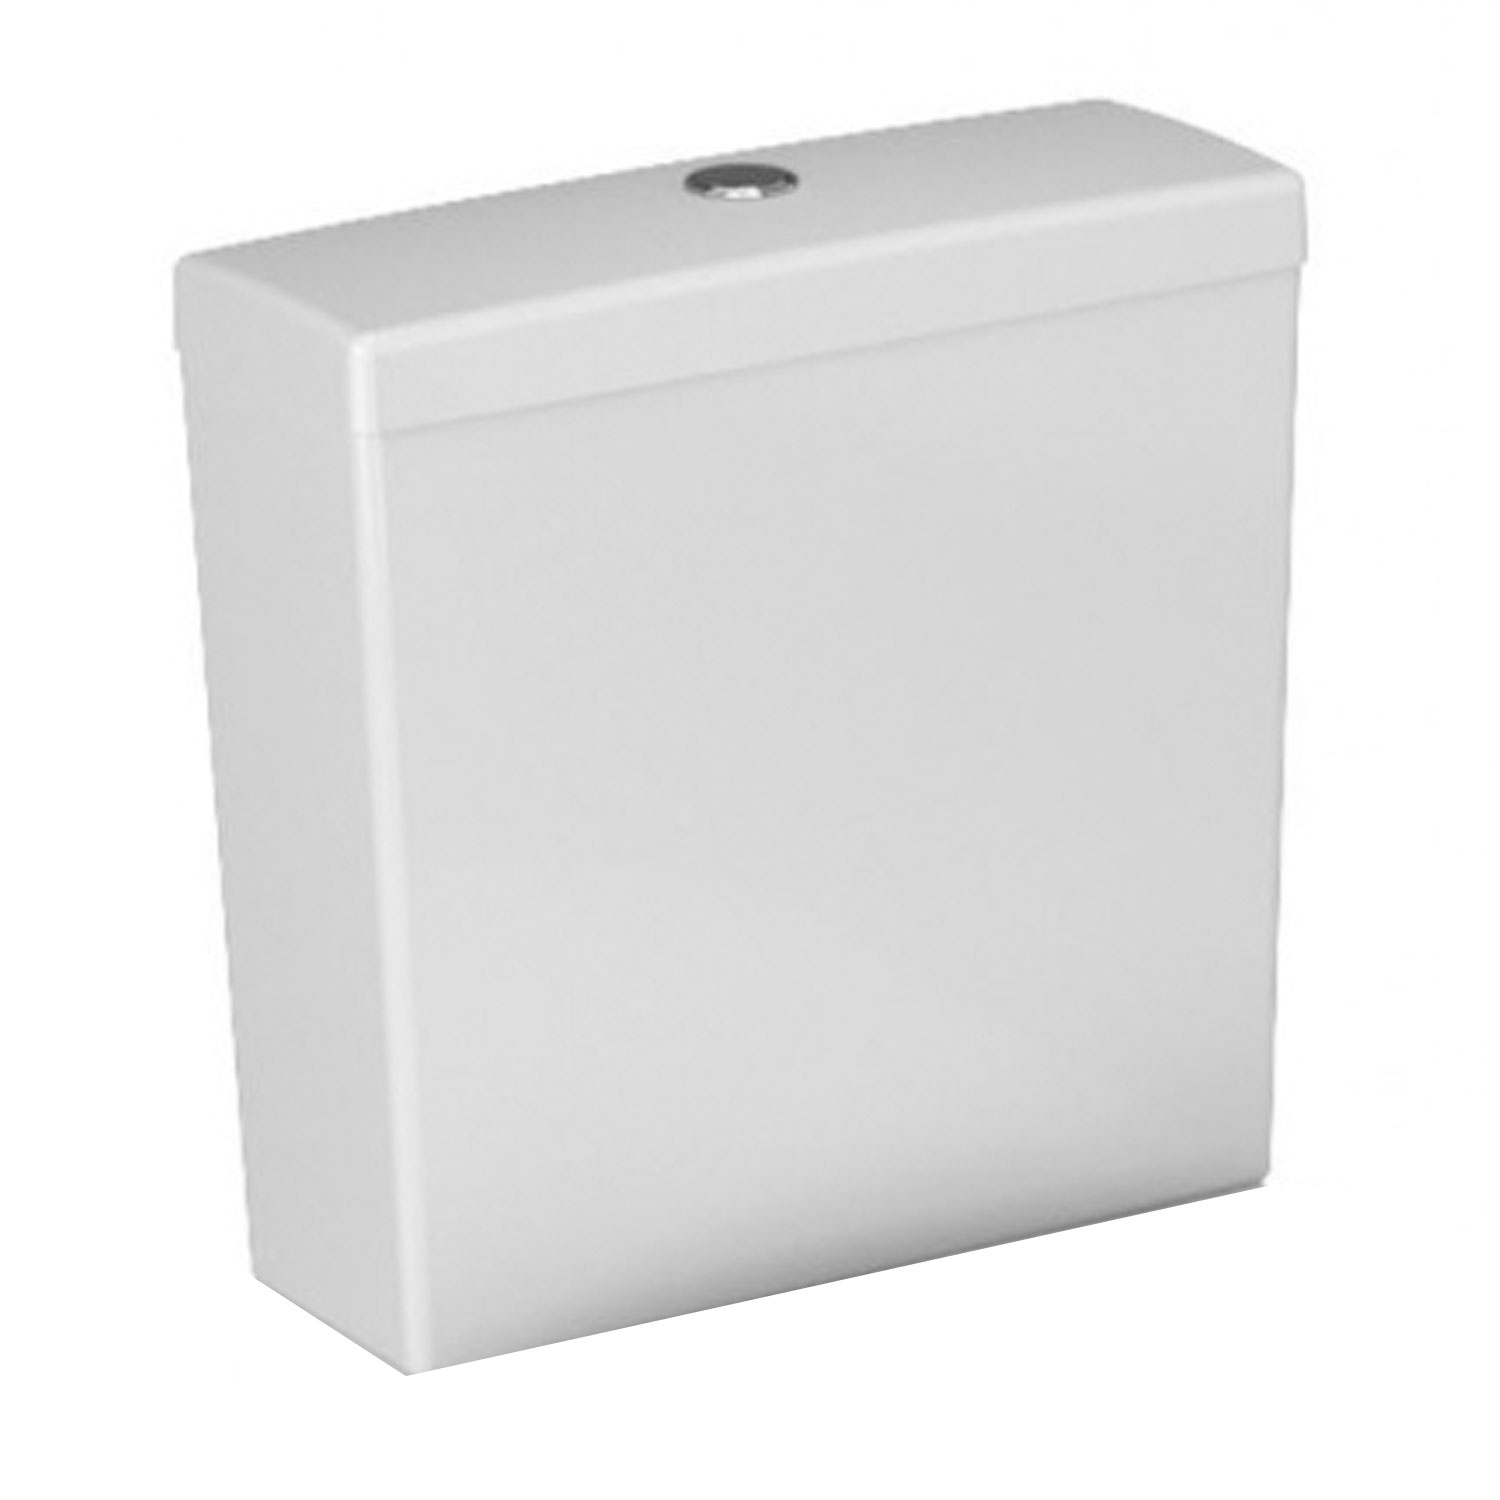 VitrA S50 Compact Close Coupled BTW Toilet WC Push Button Cistern - Soft Close Seat-0